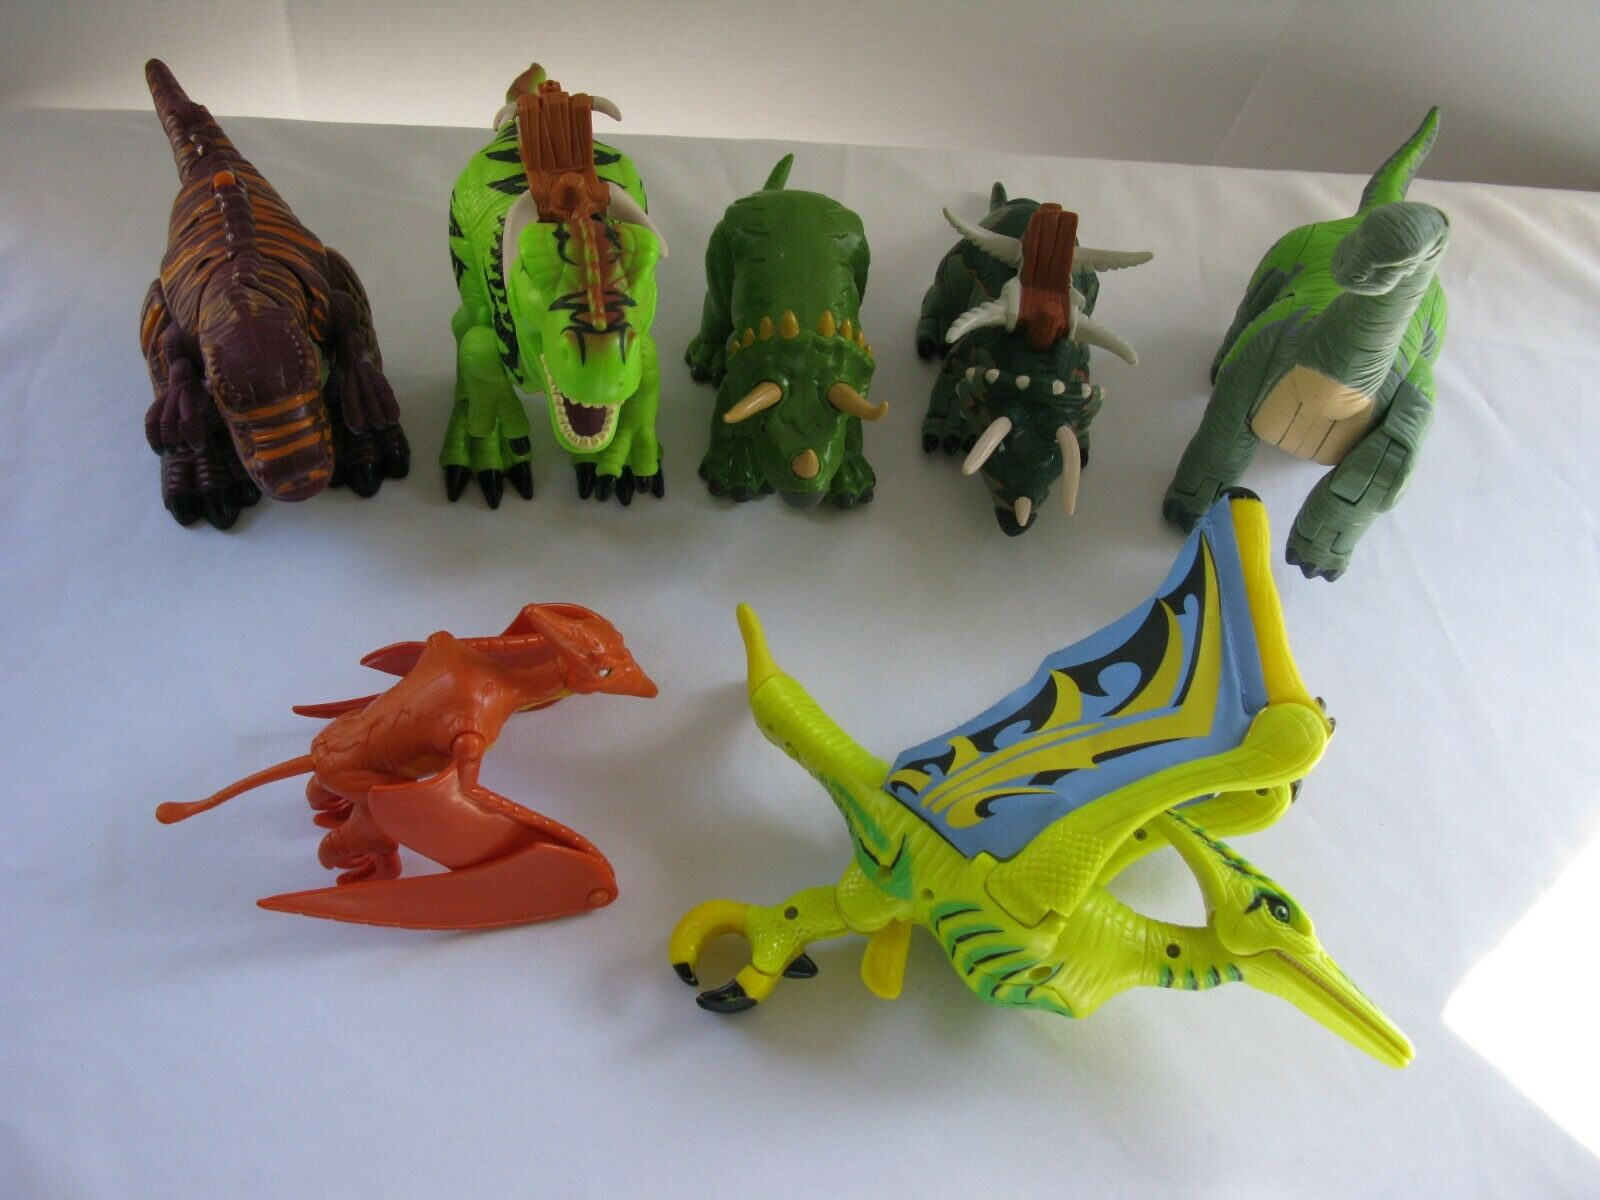 7 Imaginext Dinosaurier, [Battery Opererat Ljudrörelse] Fisher Price Fun häftigt